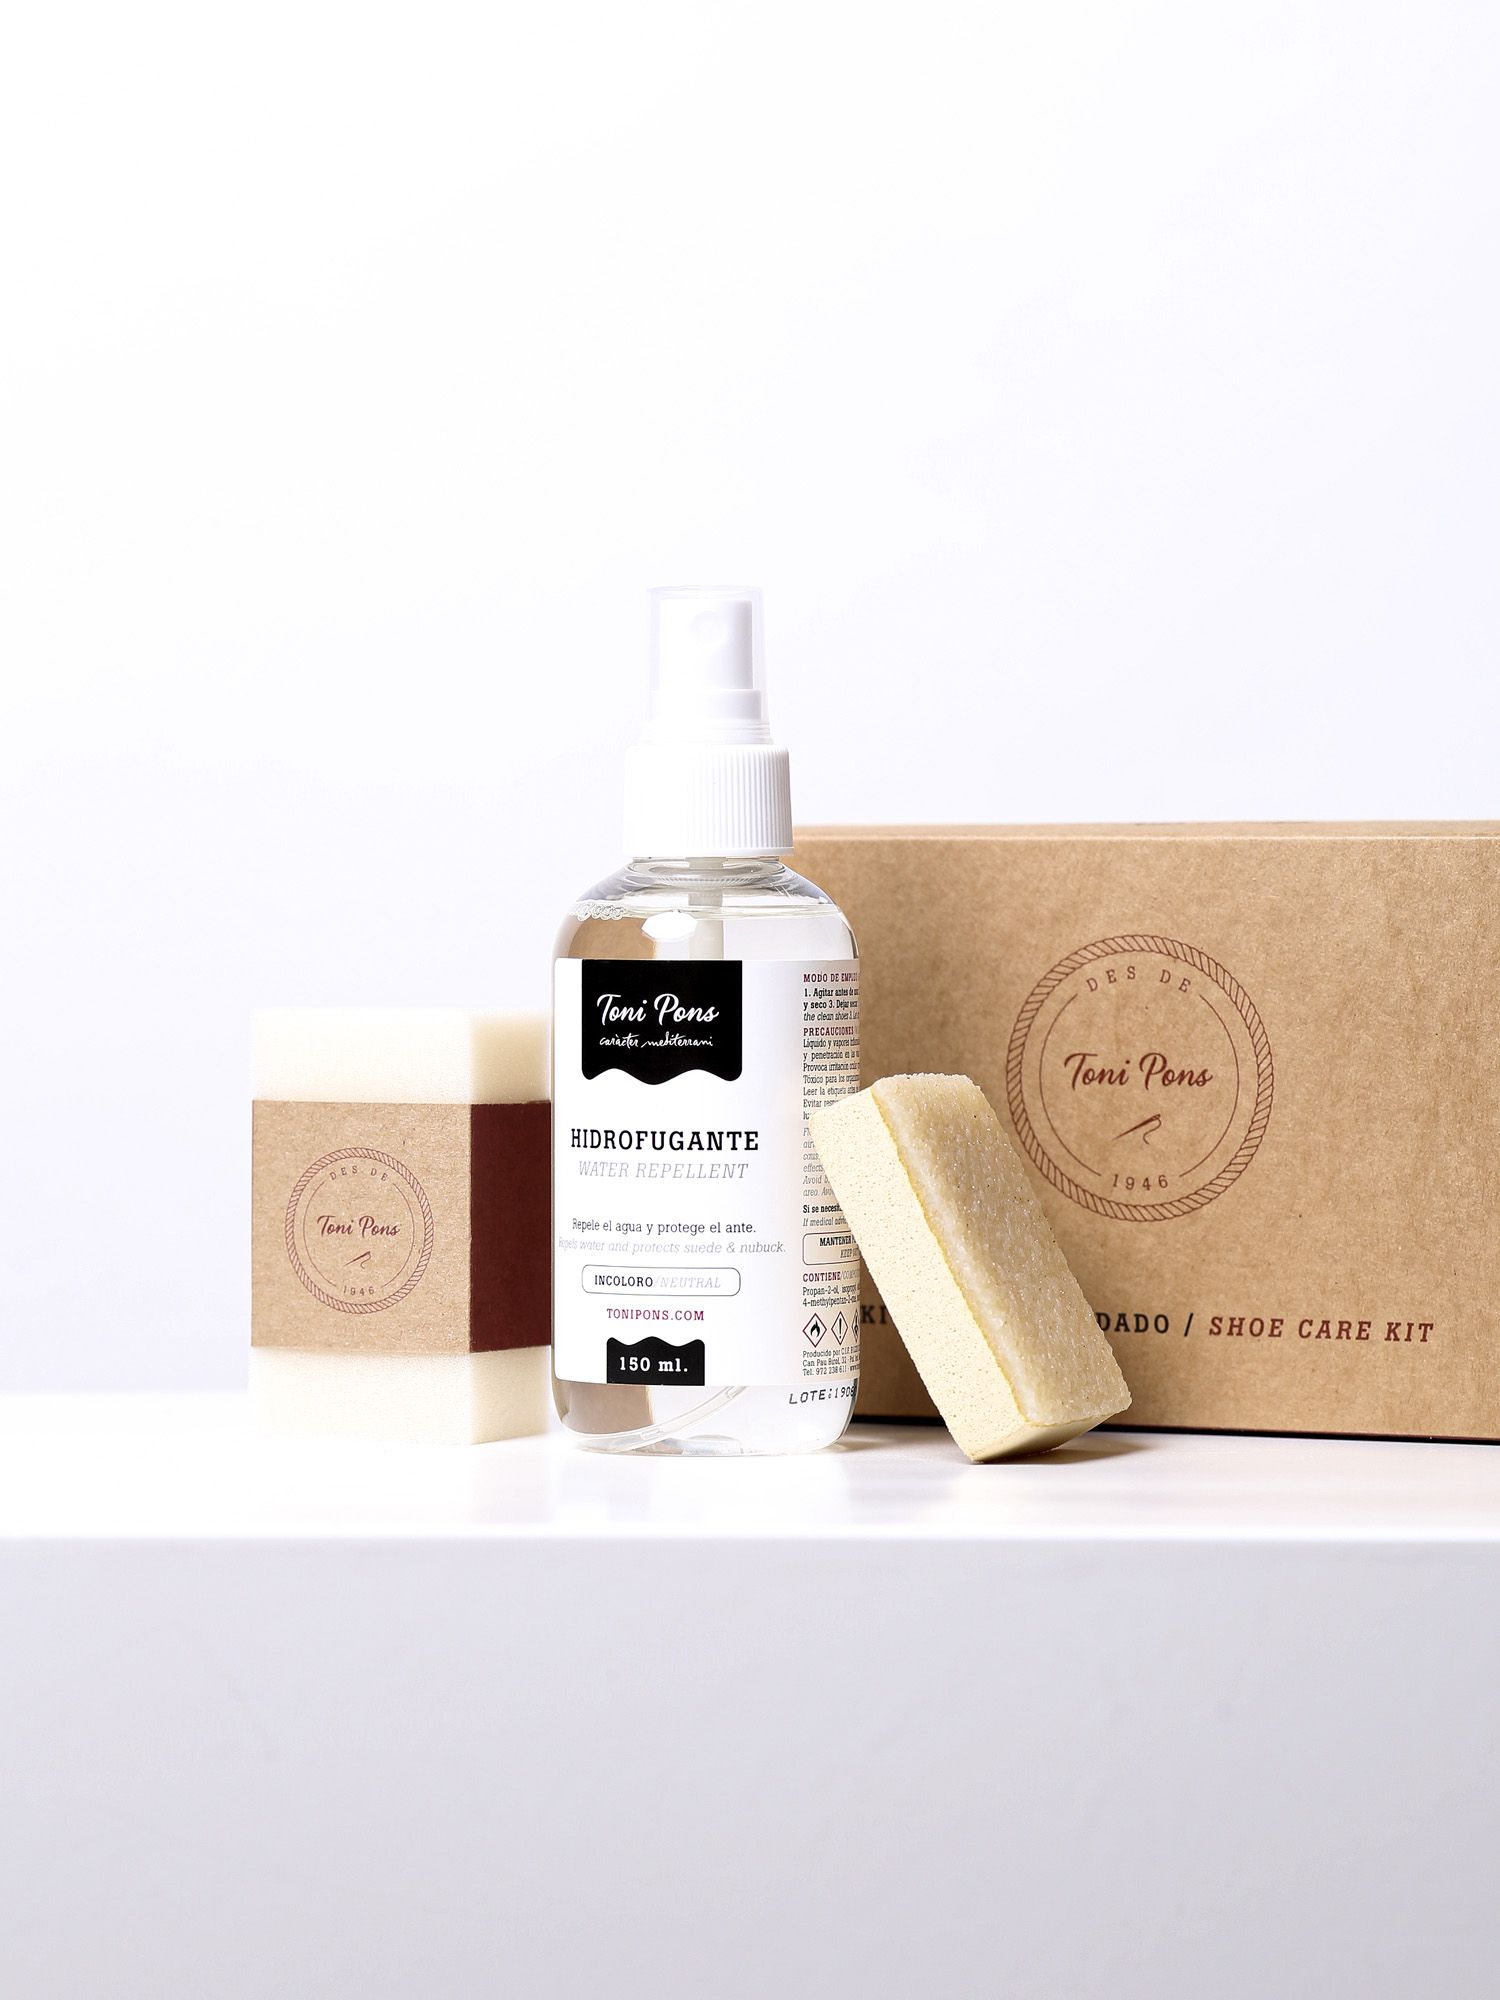 KIT HIDROFUGANT - 150ml spray for suede and nubuck, with nubuck rubber and sponge.